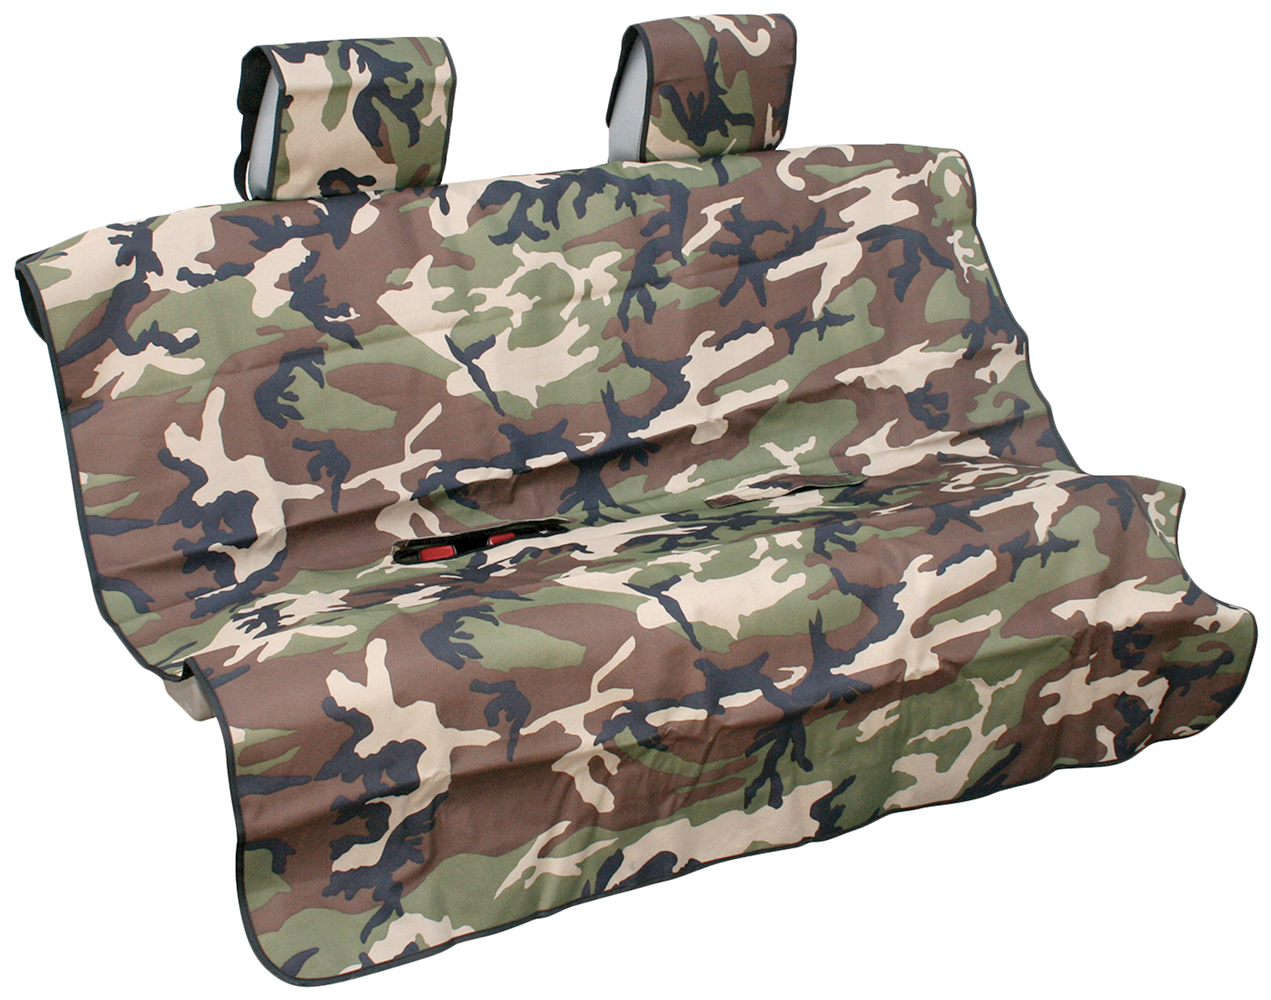 Image Result For Camo Seat Covers For Honda Ridgeline